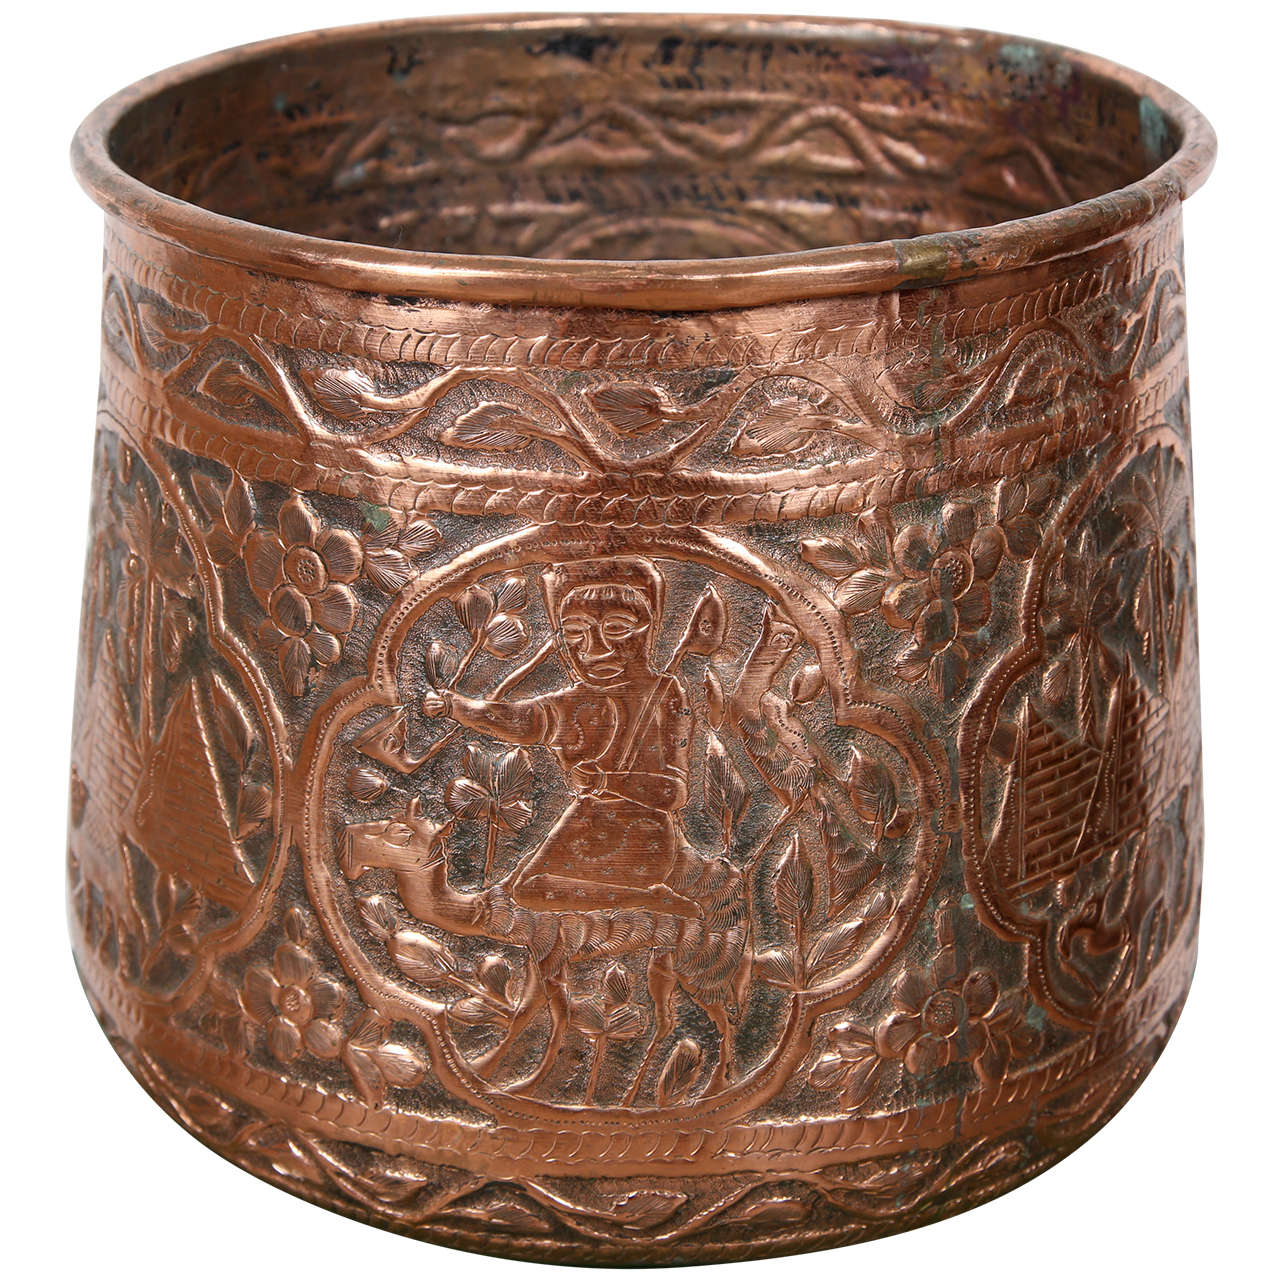 Copper hand etched mameluke pot jardiniere for sale at 1stdibs copper hand etched mameluke pot jardiniere for sale biocorpaavc